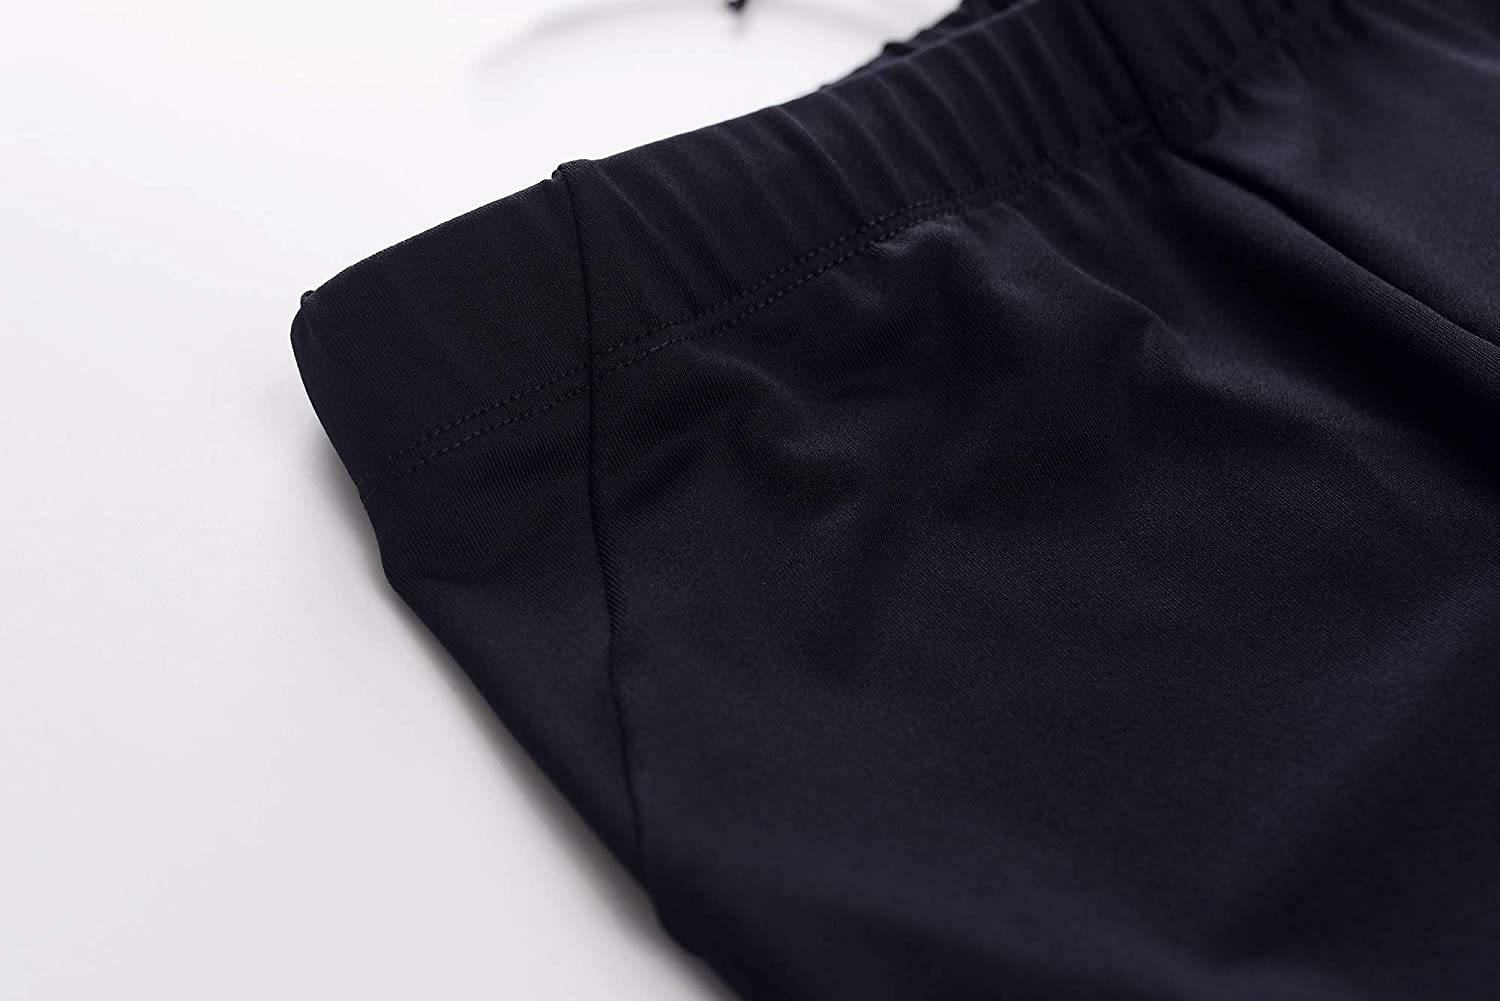 Eono Kids Running Sports Pants Athletic Track Pants with Elasticated Waistband